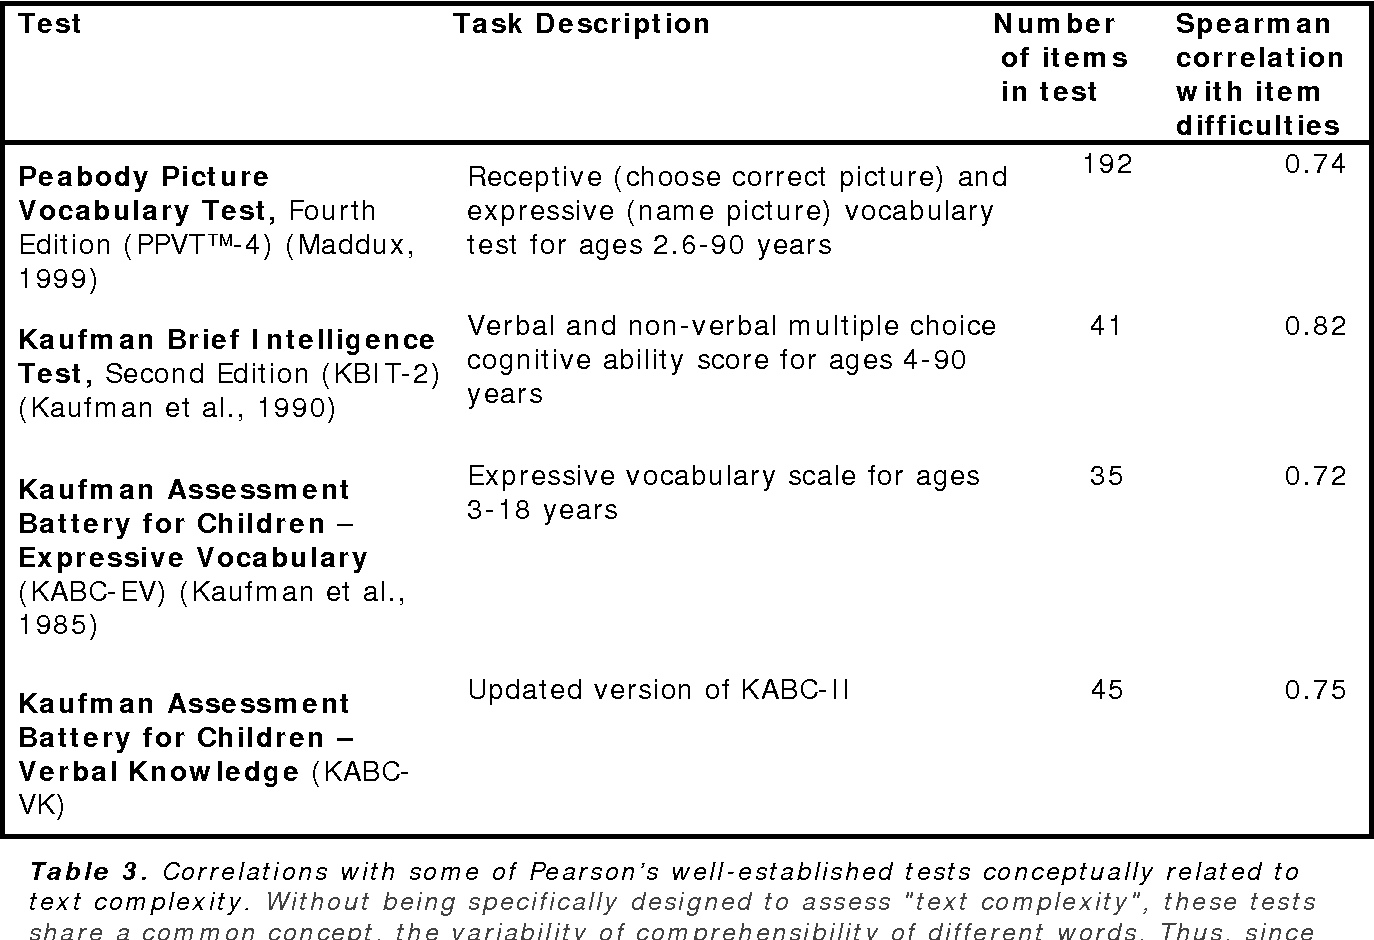 Table 3 from Pearson's Text Complexity Measure White Paper Pearson's